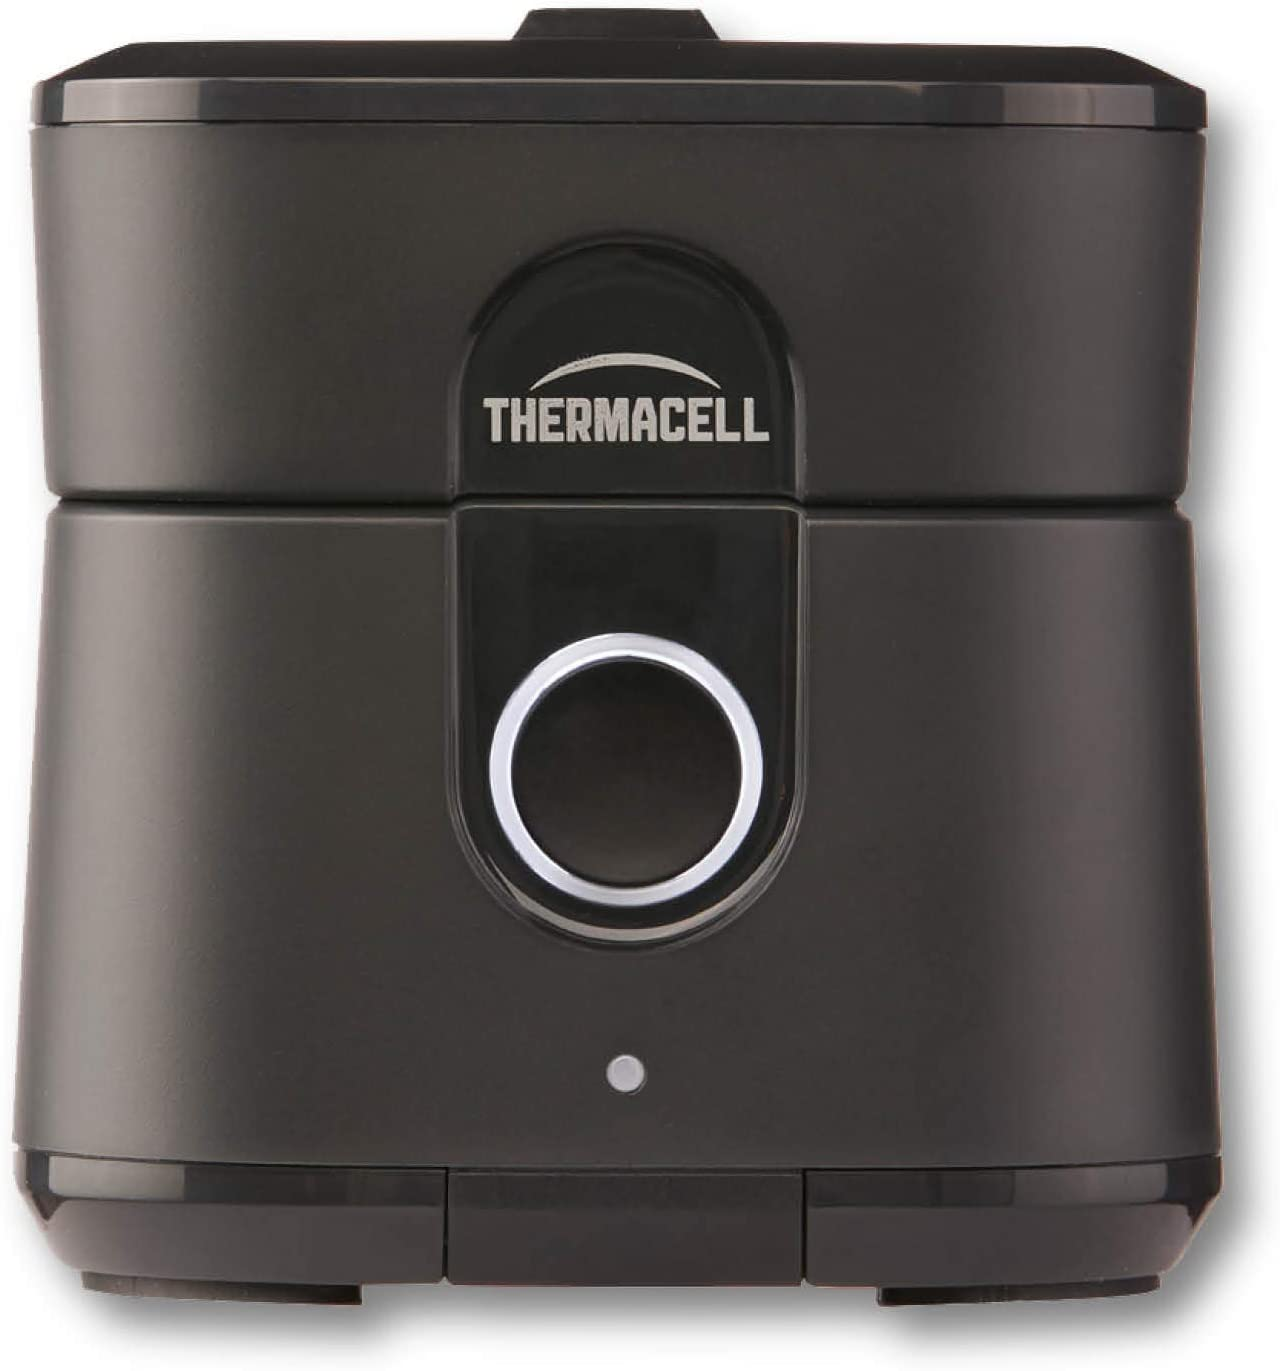 Radius Zone Mosquito Repeller from Thermacell, Gen 2.0, Black; No Spray Mosquito Repellent; Rechargeable; Protect Outdoor Areas from Insects for 6.5+ Hours Per Charge; Easy to Use, Scent and DEET-Free